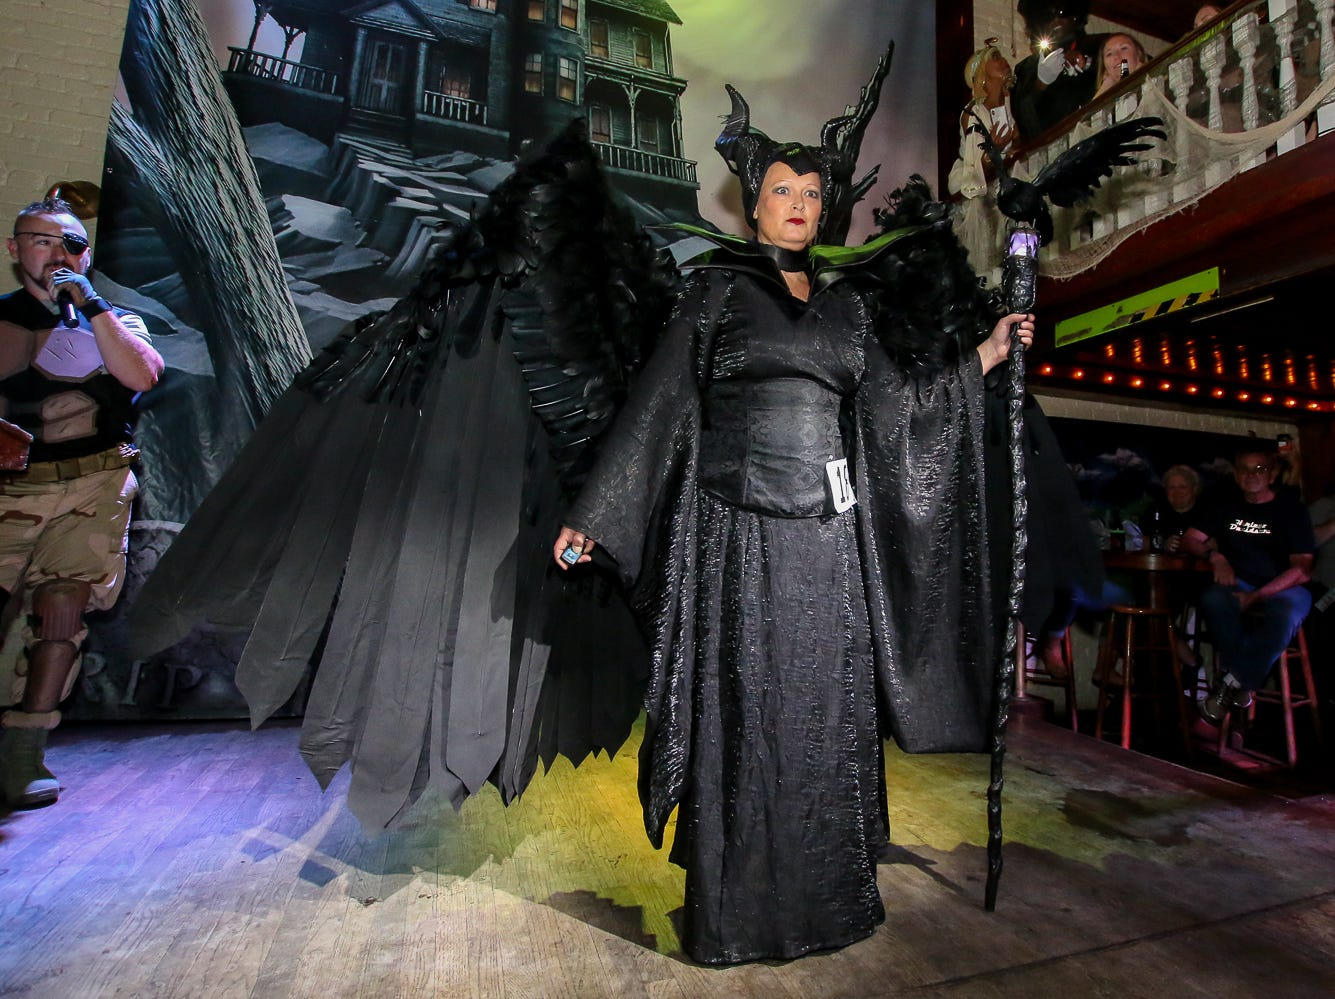 """Maleficent"" won 1st place in the $1,000 grand prize Halloween costume contest, which featured over 100 entrants, at Seville Quarter on Wednesday, October 31, 2018."